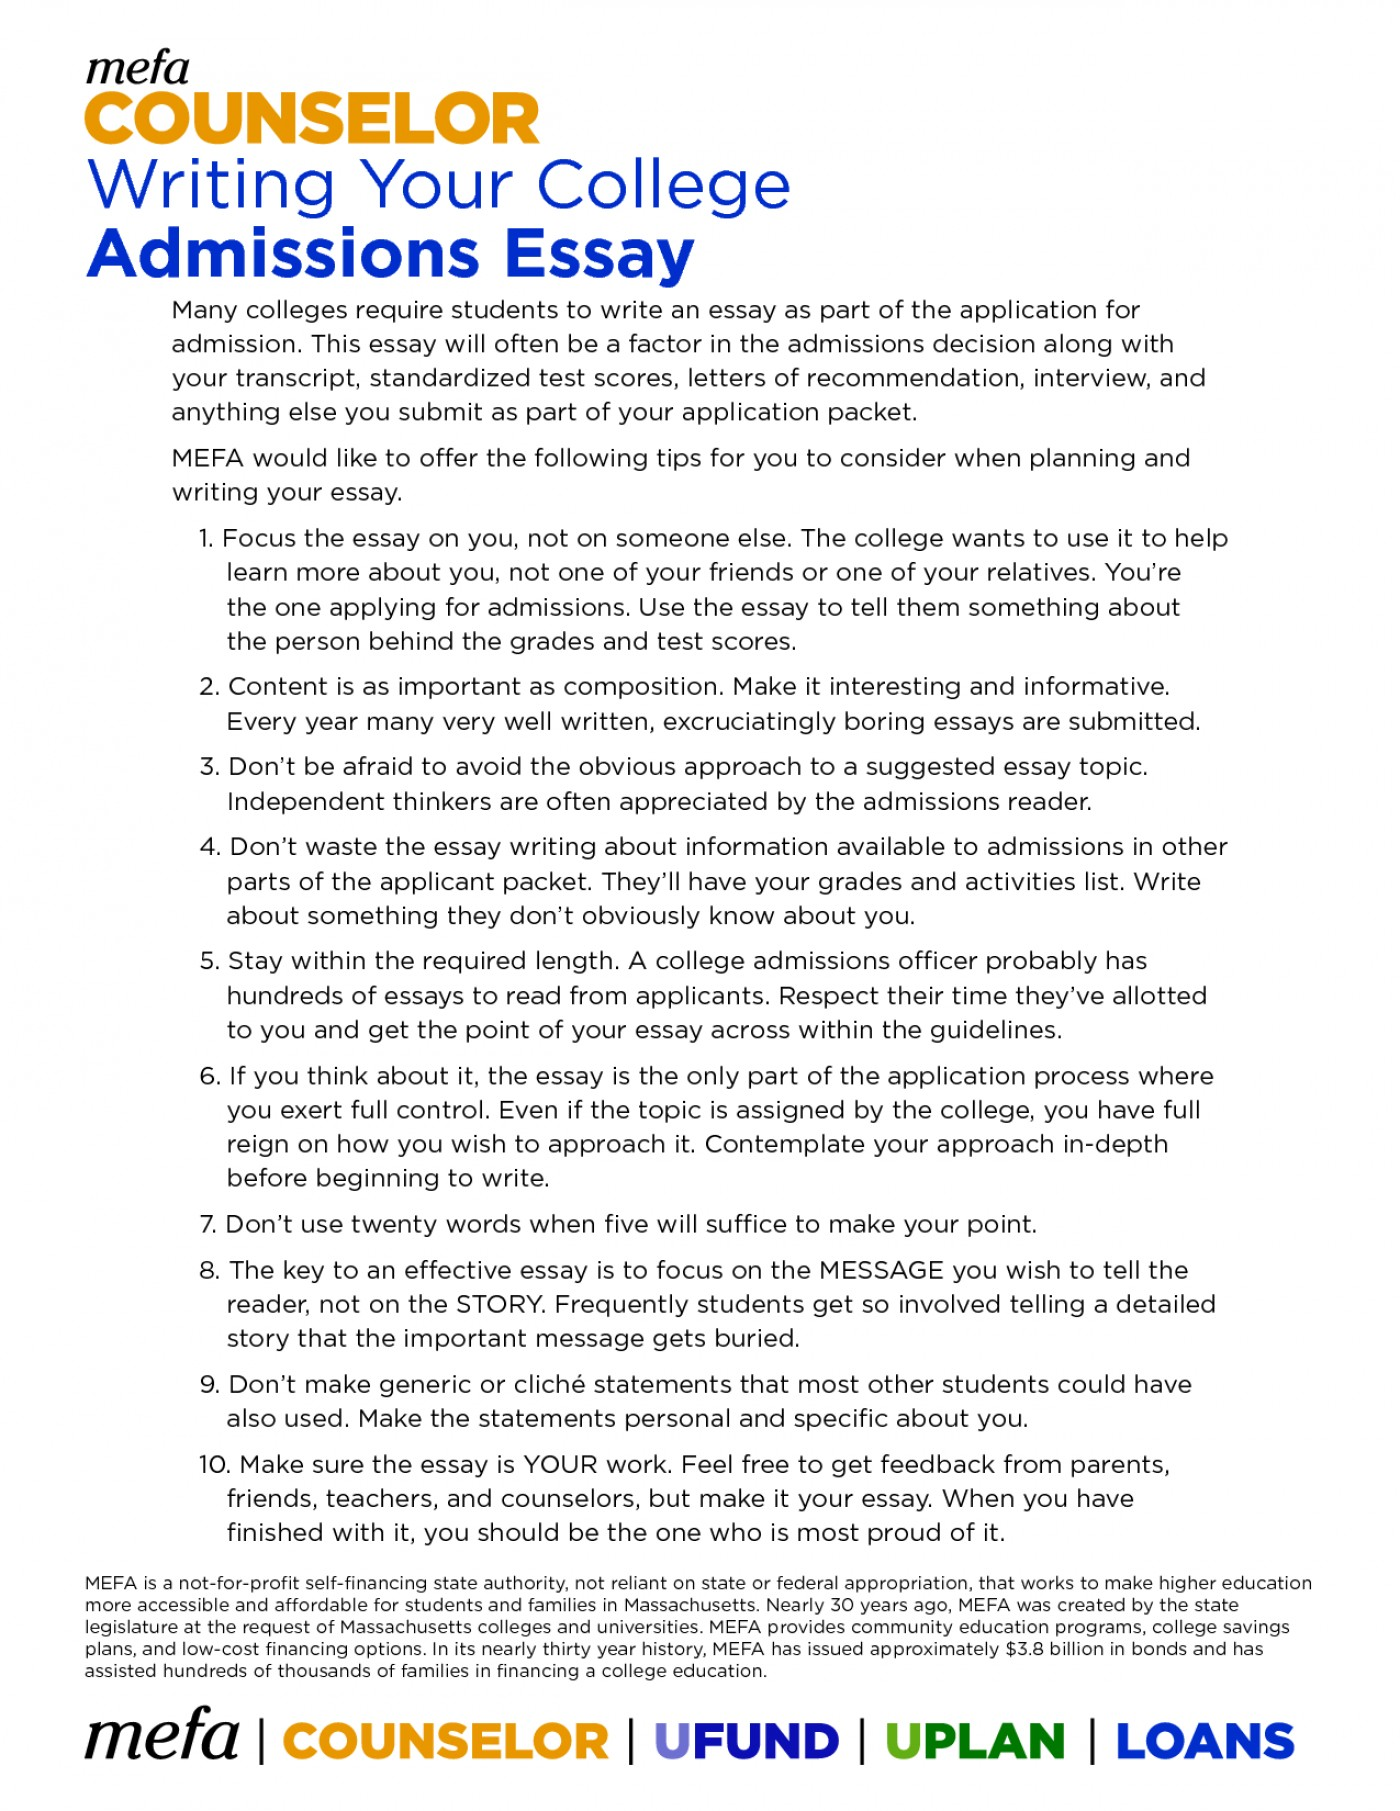 020 College Entrance Essay 2215664842 Writing Service Awful Exam Prompts Ideas App 1400